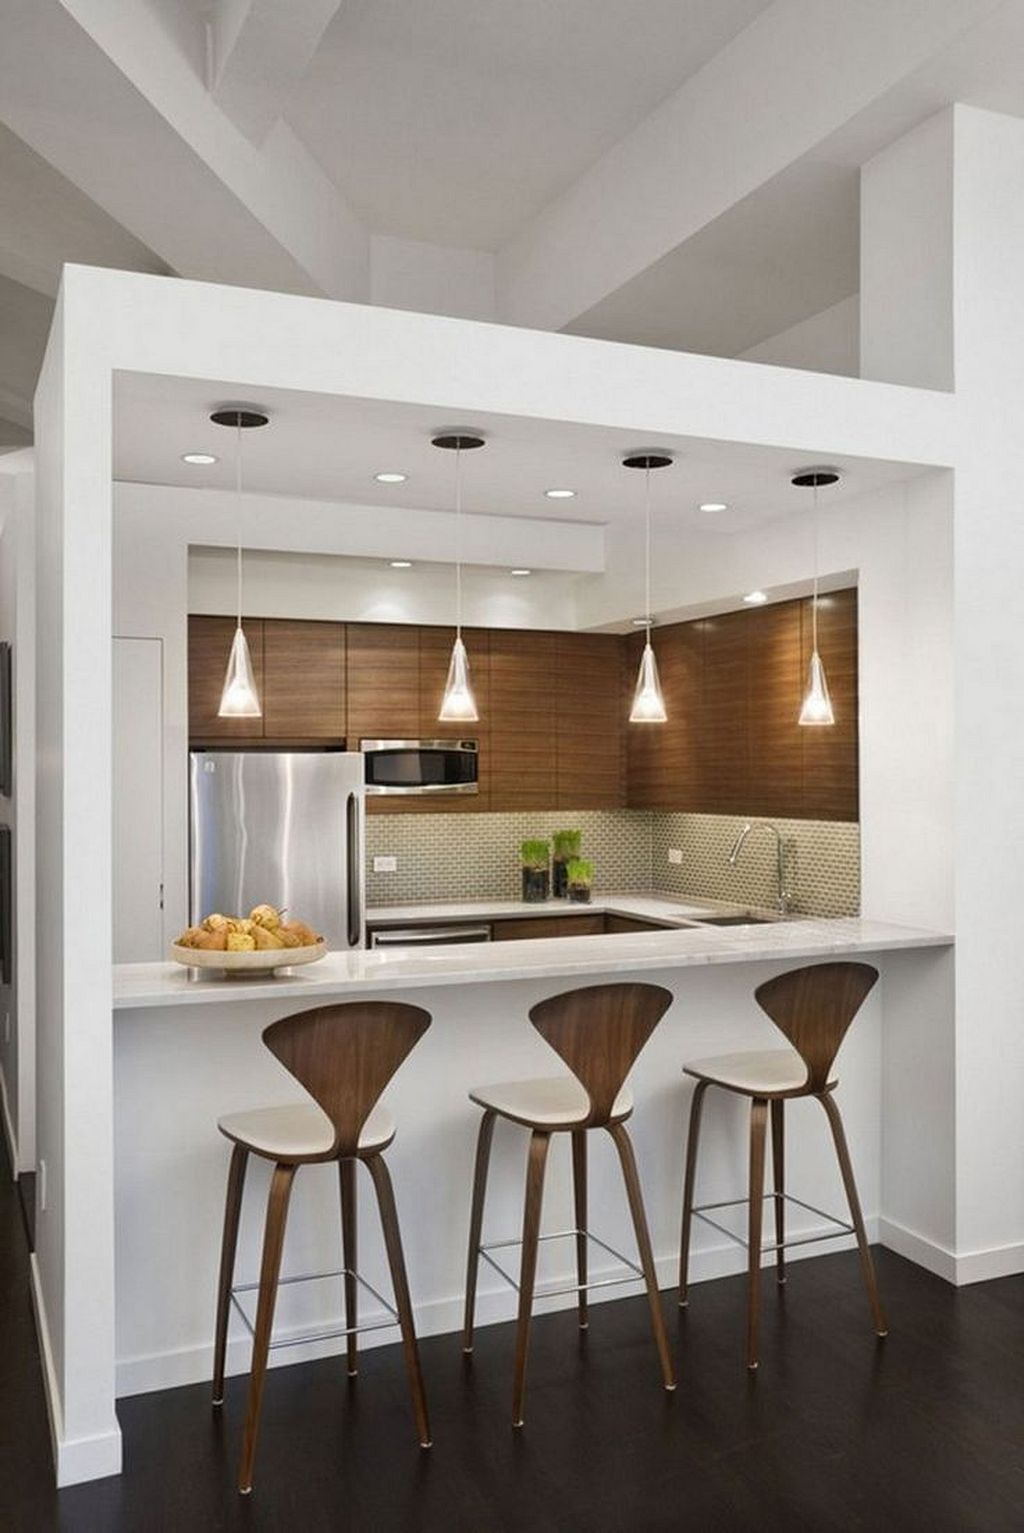 30 Awesome Ushaped Kitchen Designs For Small Spaces  Kitchen Amazing Kitchen Design Small Spaces Inspiration